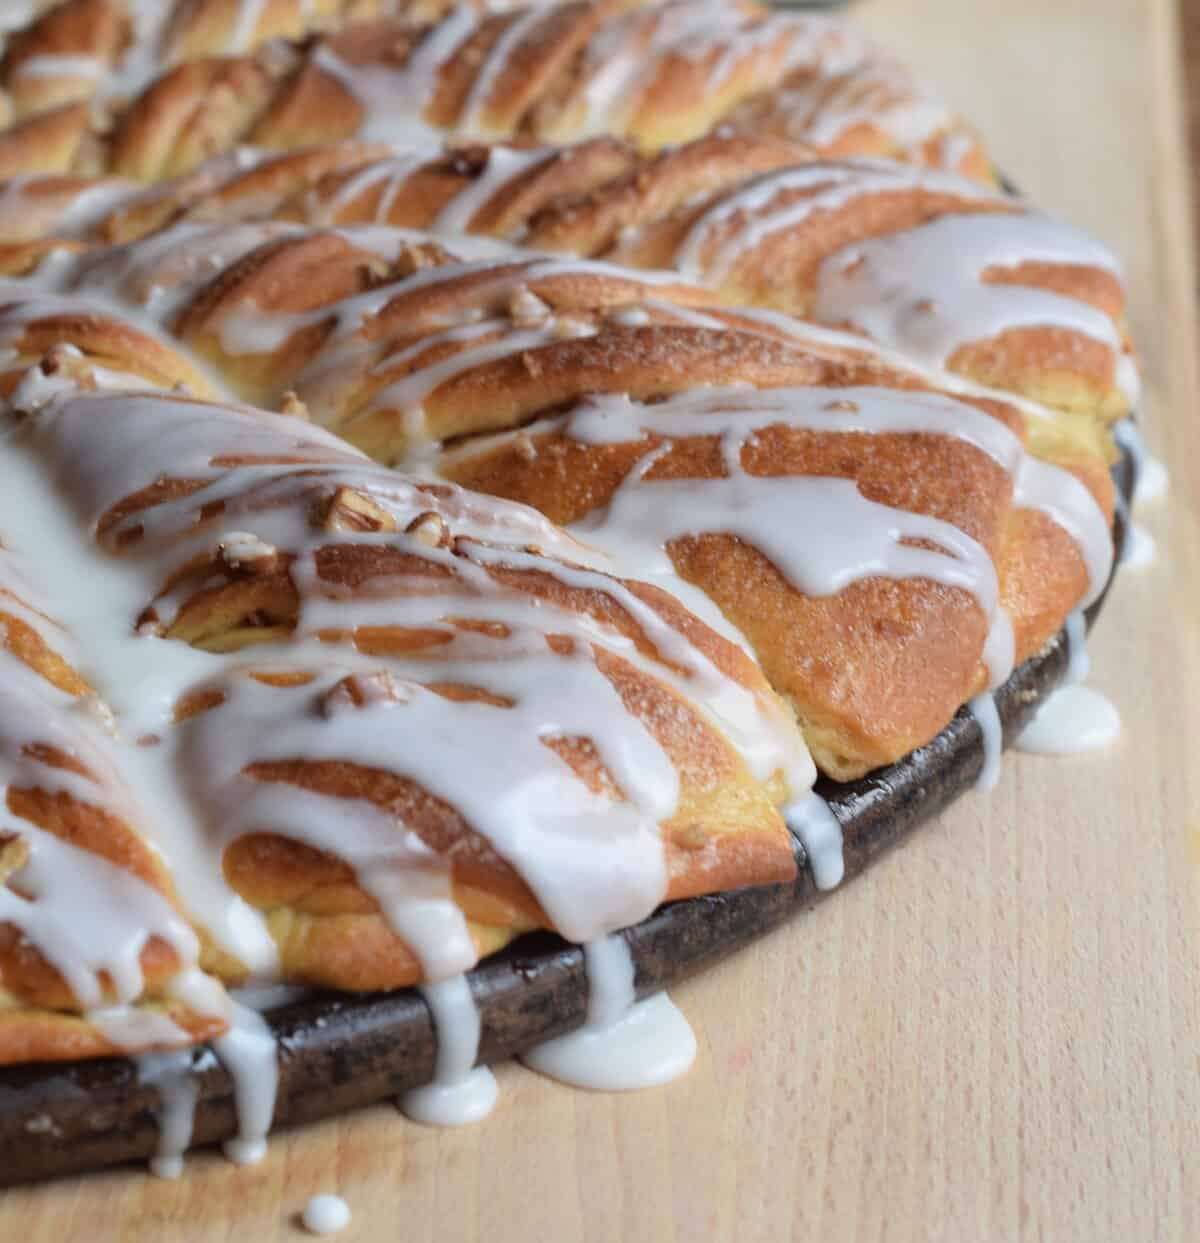 twisted sweet rolls with icing dripping over the side of round pan